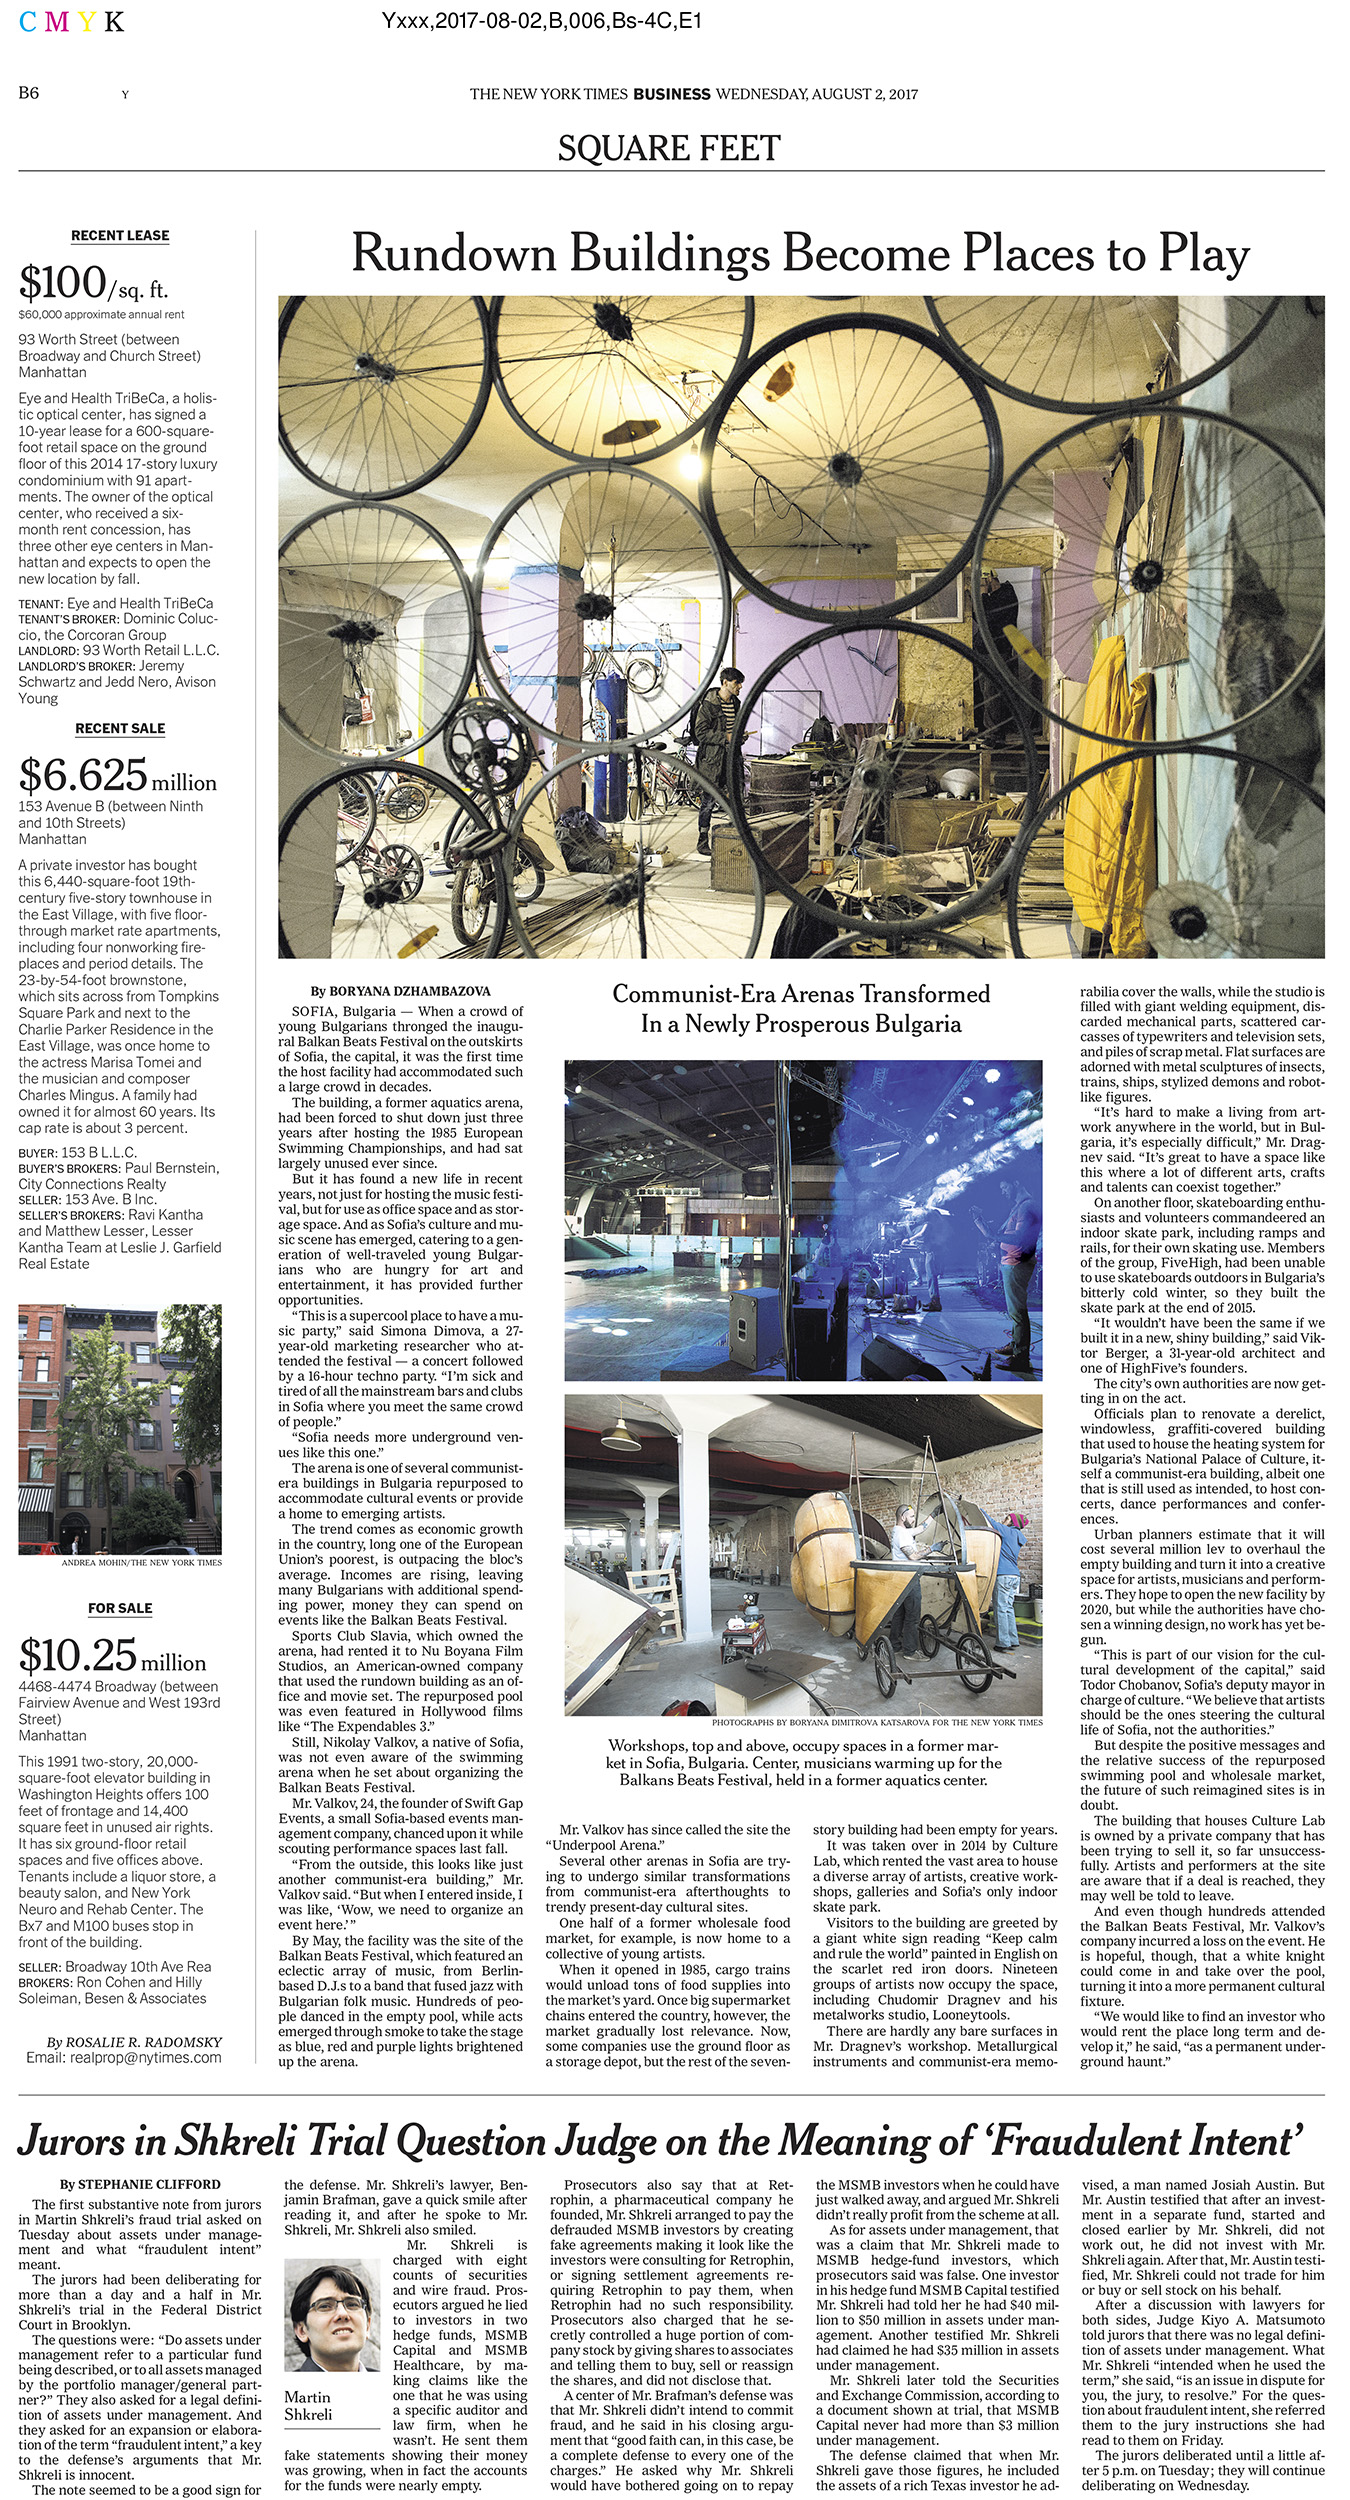 NYT#NYTimes#08-02-2017#National#1#BizSquareFeet1#1#cci